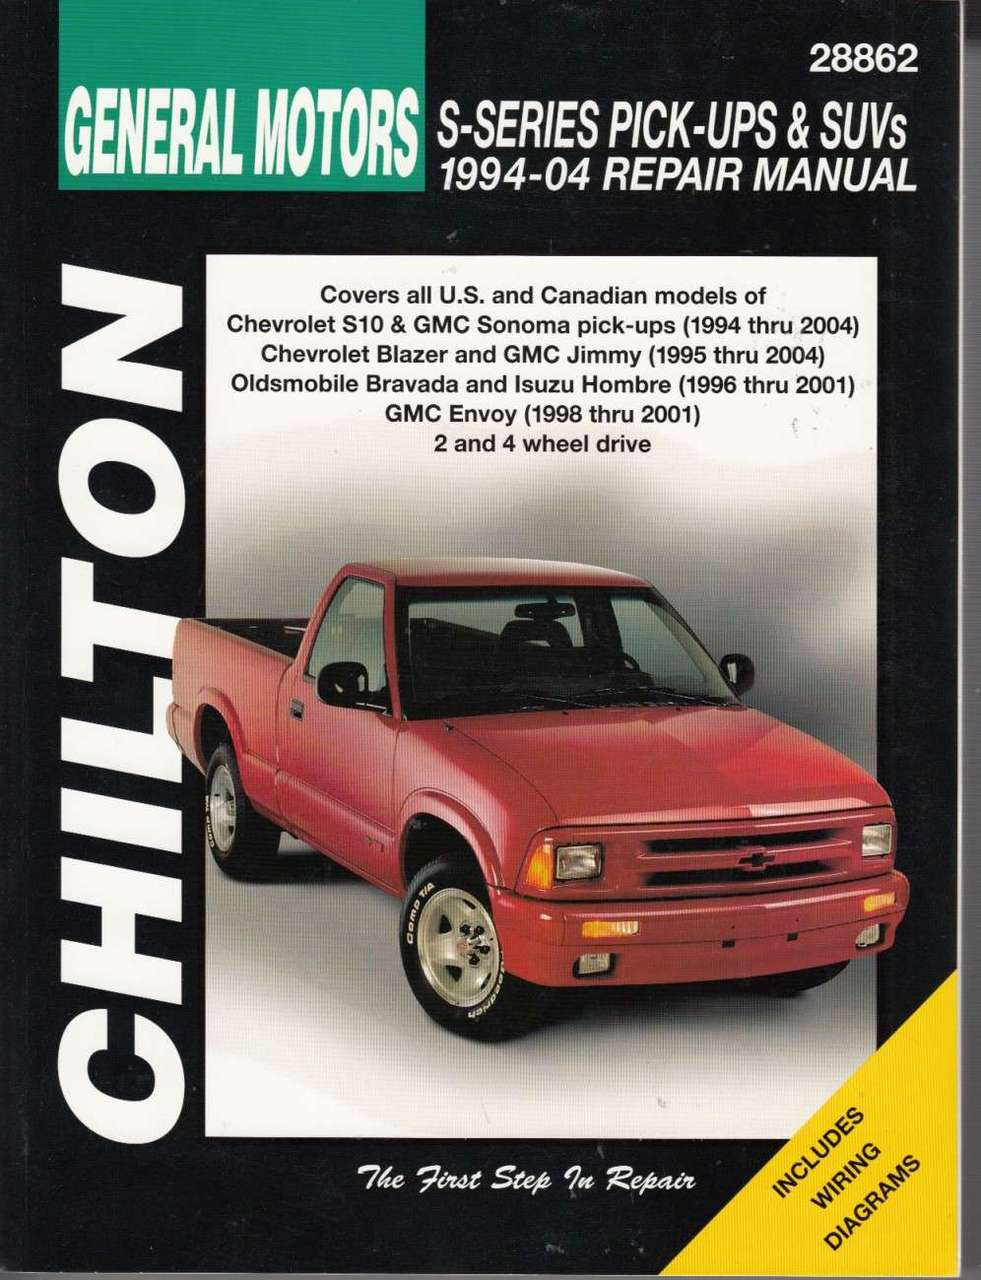 Gm Chevrolet S Series Pick Ups Suvs 1994 2004 Chilton Workshop Wiring Diagram For Isuzu Up Manual